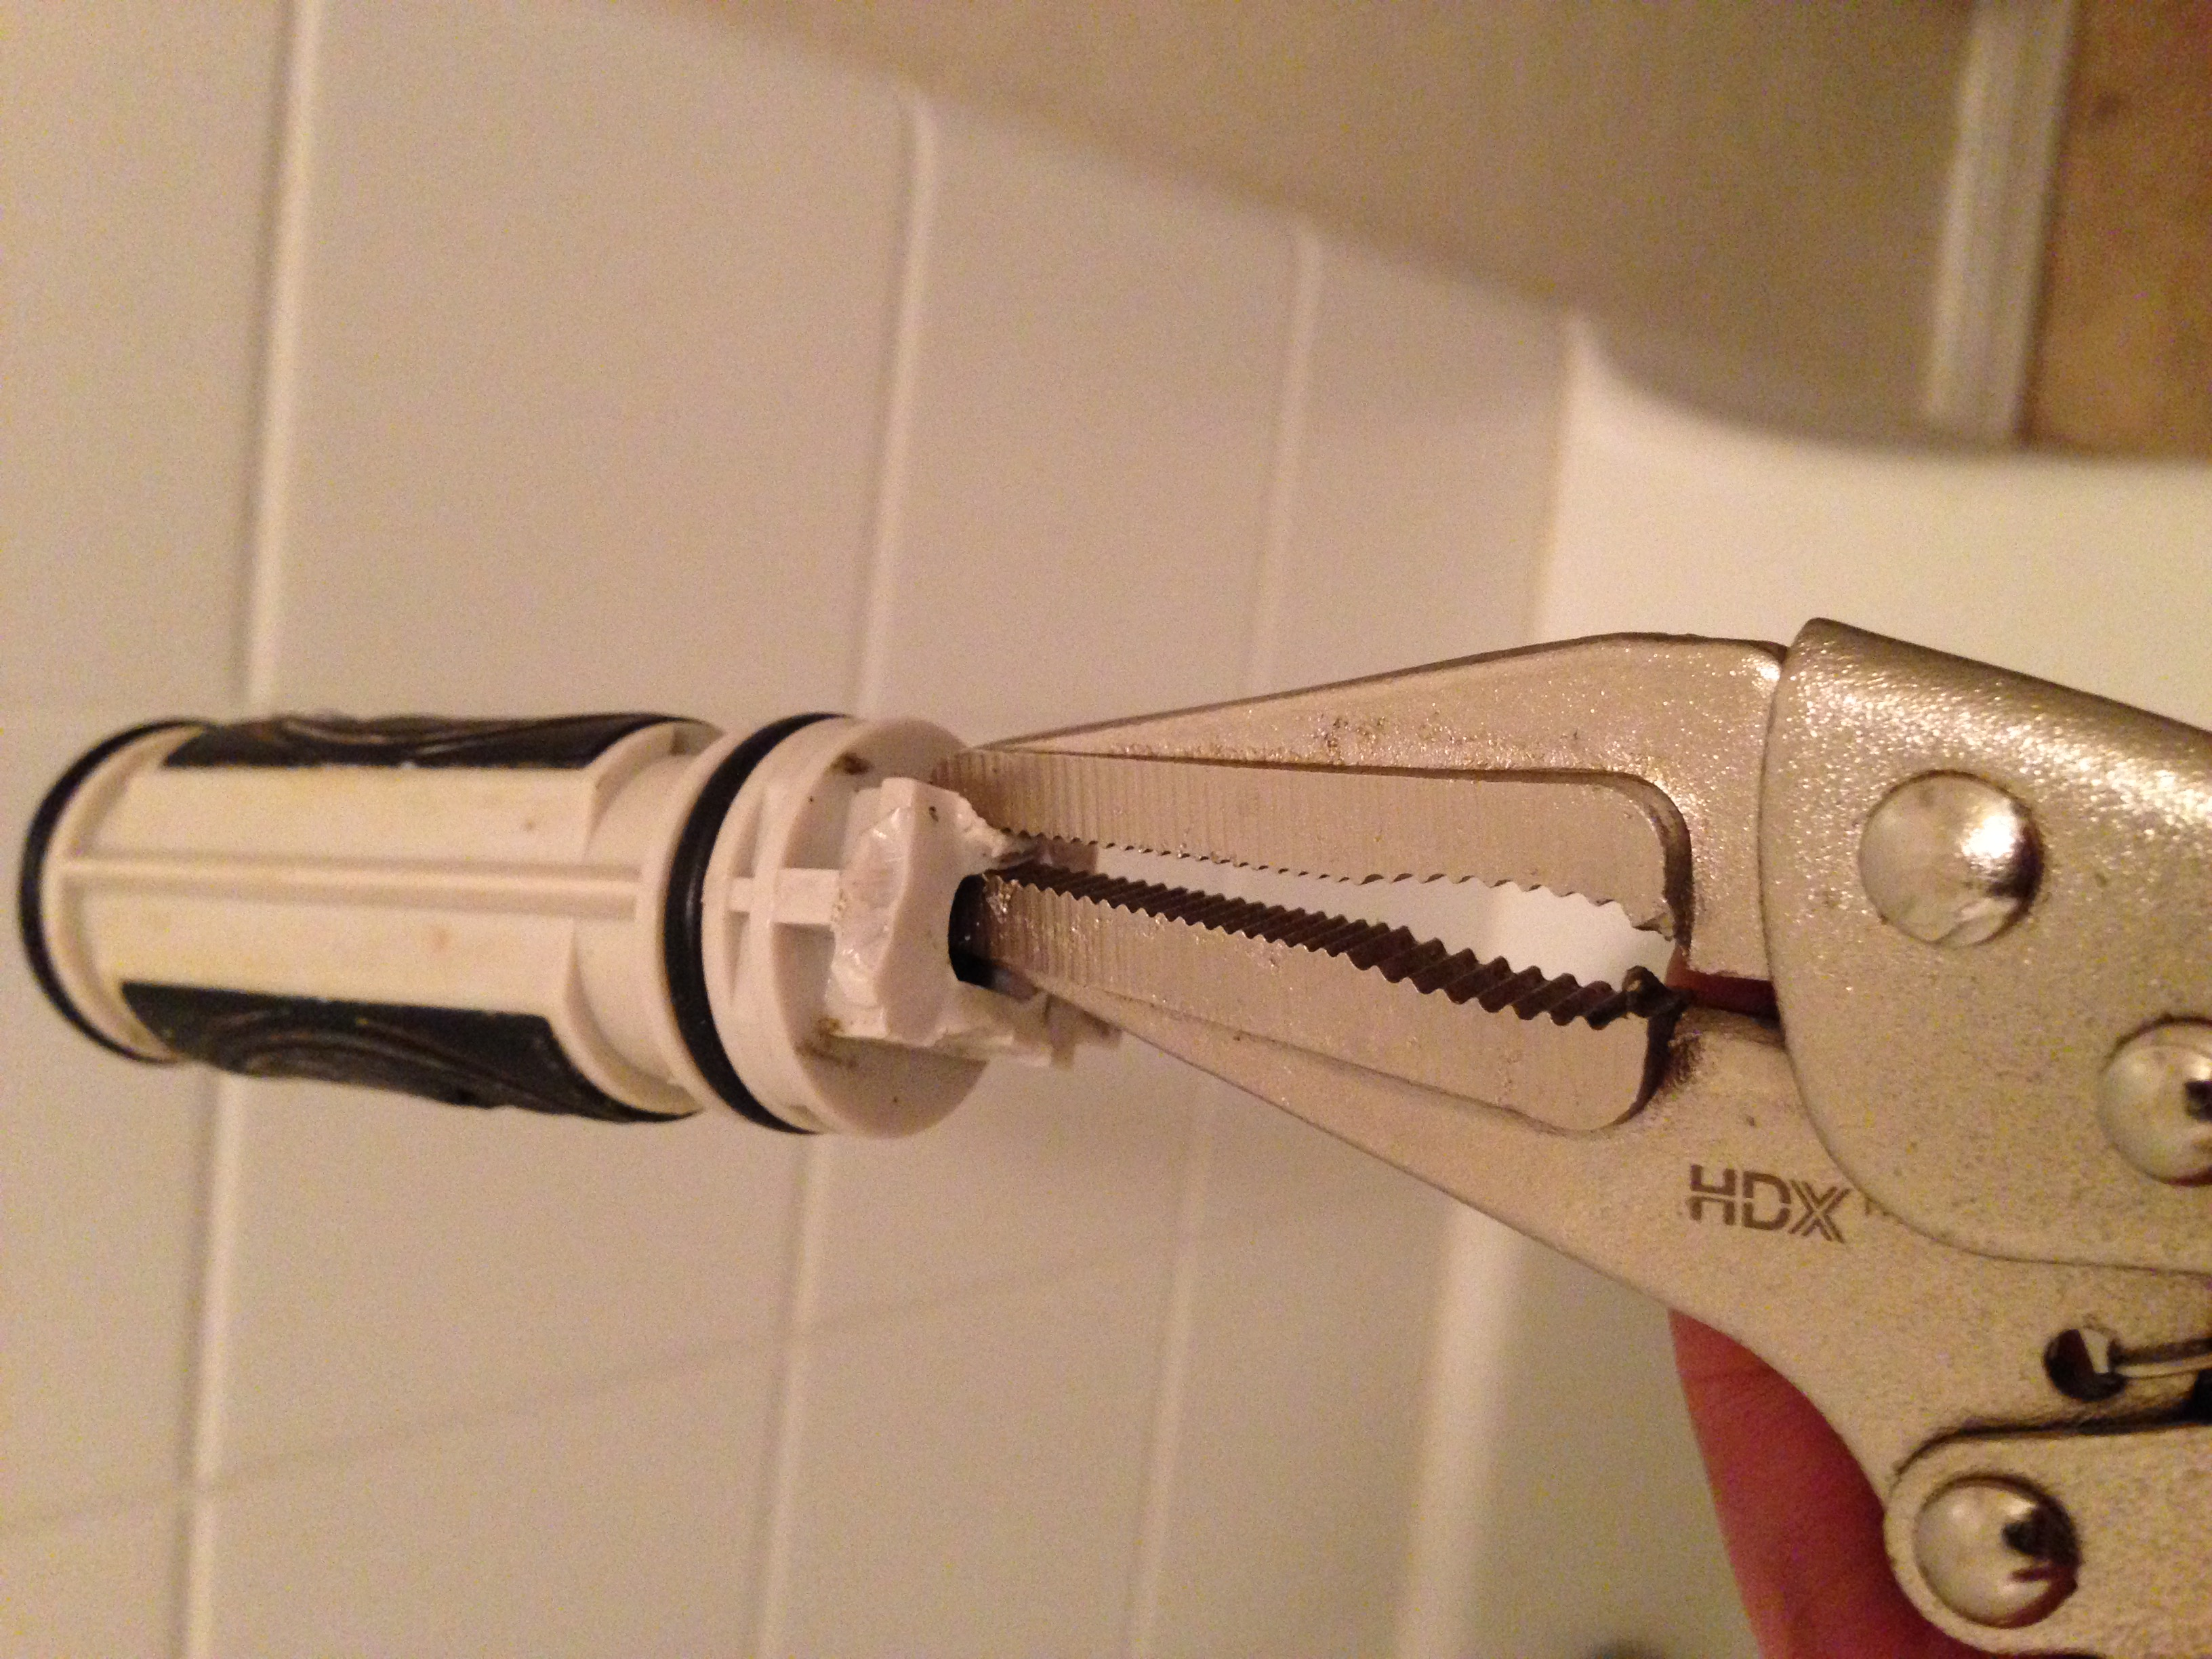 Moen Kitchen Faucet Handle Broke